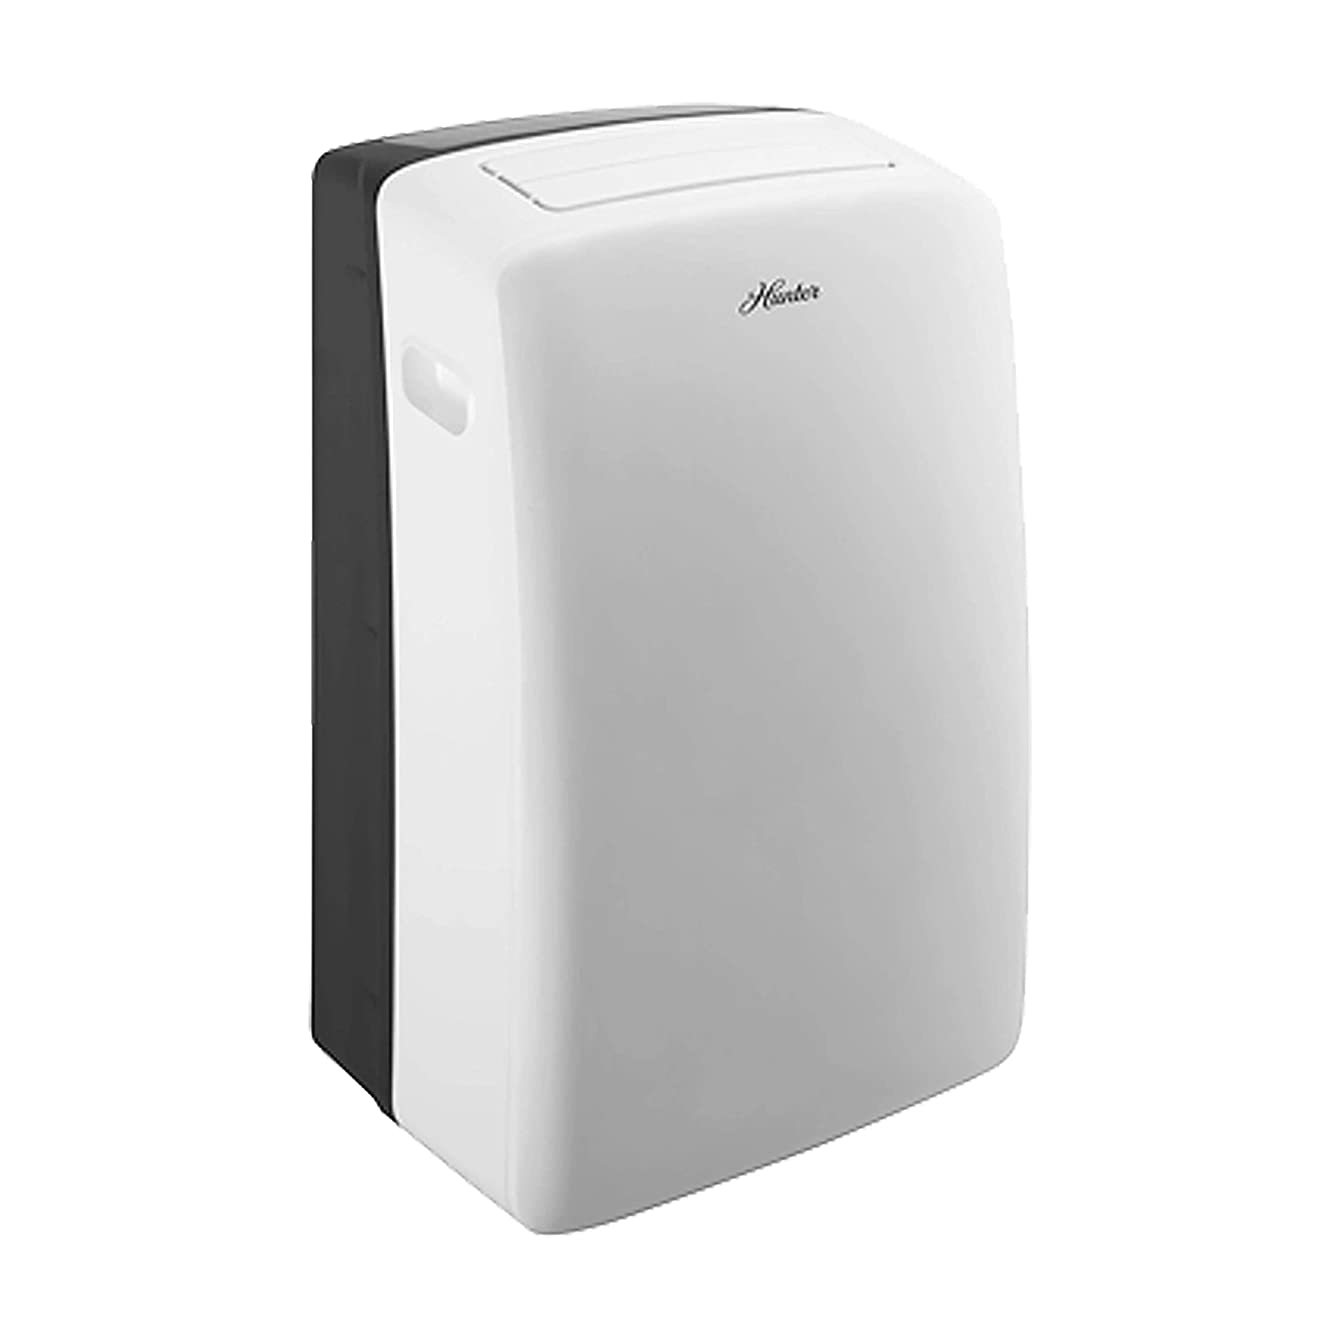 Hunter Fan Company HPAC-12C150 Hunter 12,000 (7,000 BTU DOE) Portable Air Conditioner for Rooms Up to 400 Sq. Ft, Remote Control, Built-in Dehumidifier, LED Display Screen, White